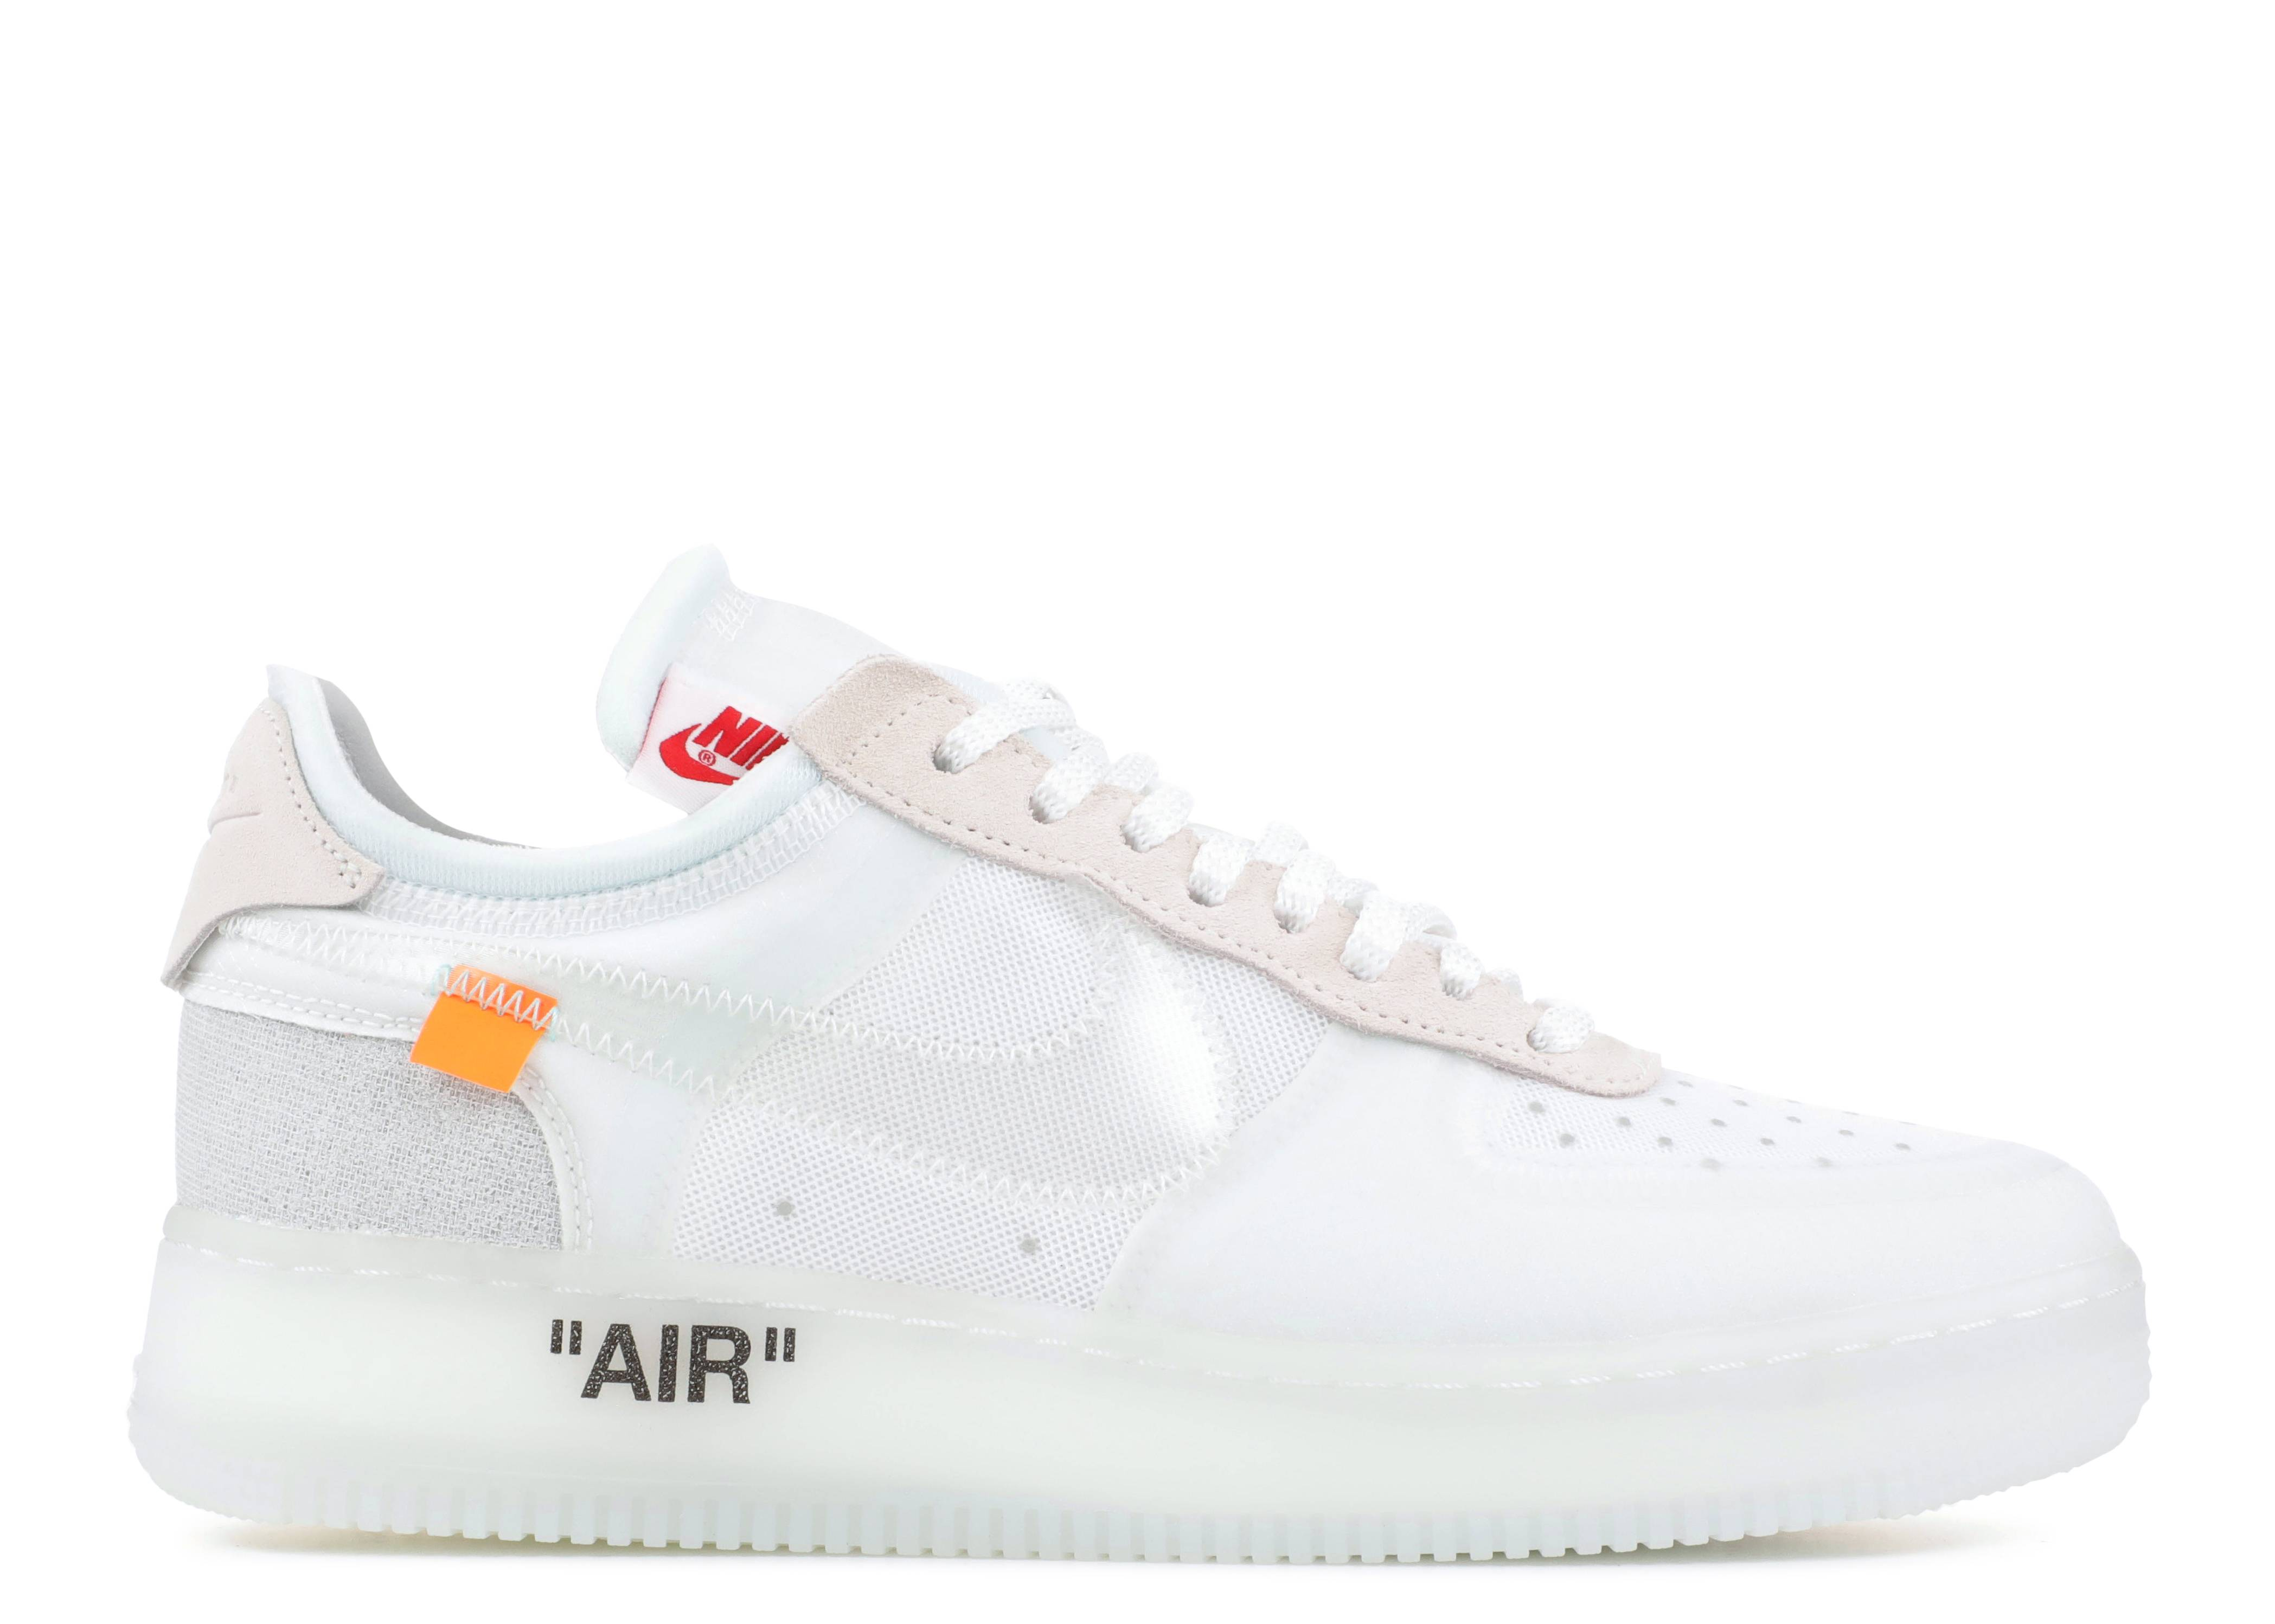 Ligero colección Samuel  Off White X Air Force 1 Low 'The Ten' - Nike - AO4606 100 -  white/white-sail | Flight Club